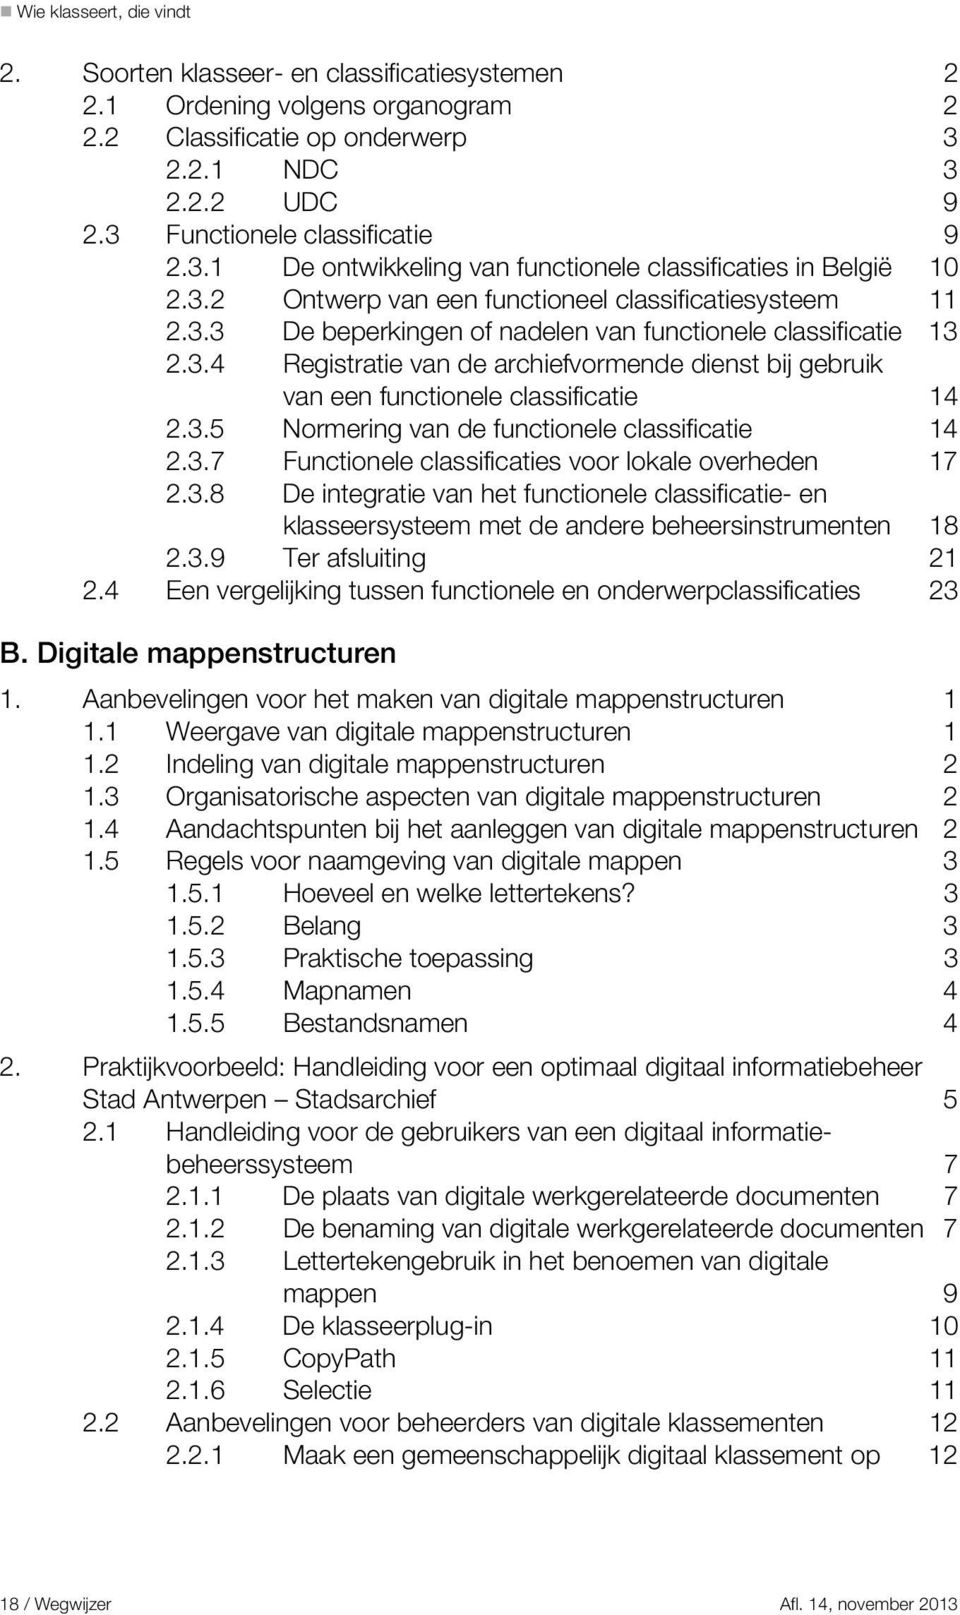 3.5 Normering van de functionele classificatie 14 2.3.7 Functionele classificaties voor lokale overheden 17 2.3.8 De integratie van het functionele classificatie- en klasseersysteem met de andere beheersinstrumenten 18 2.